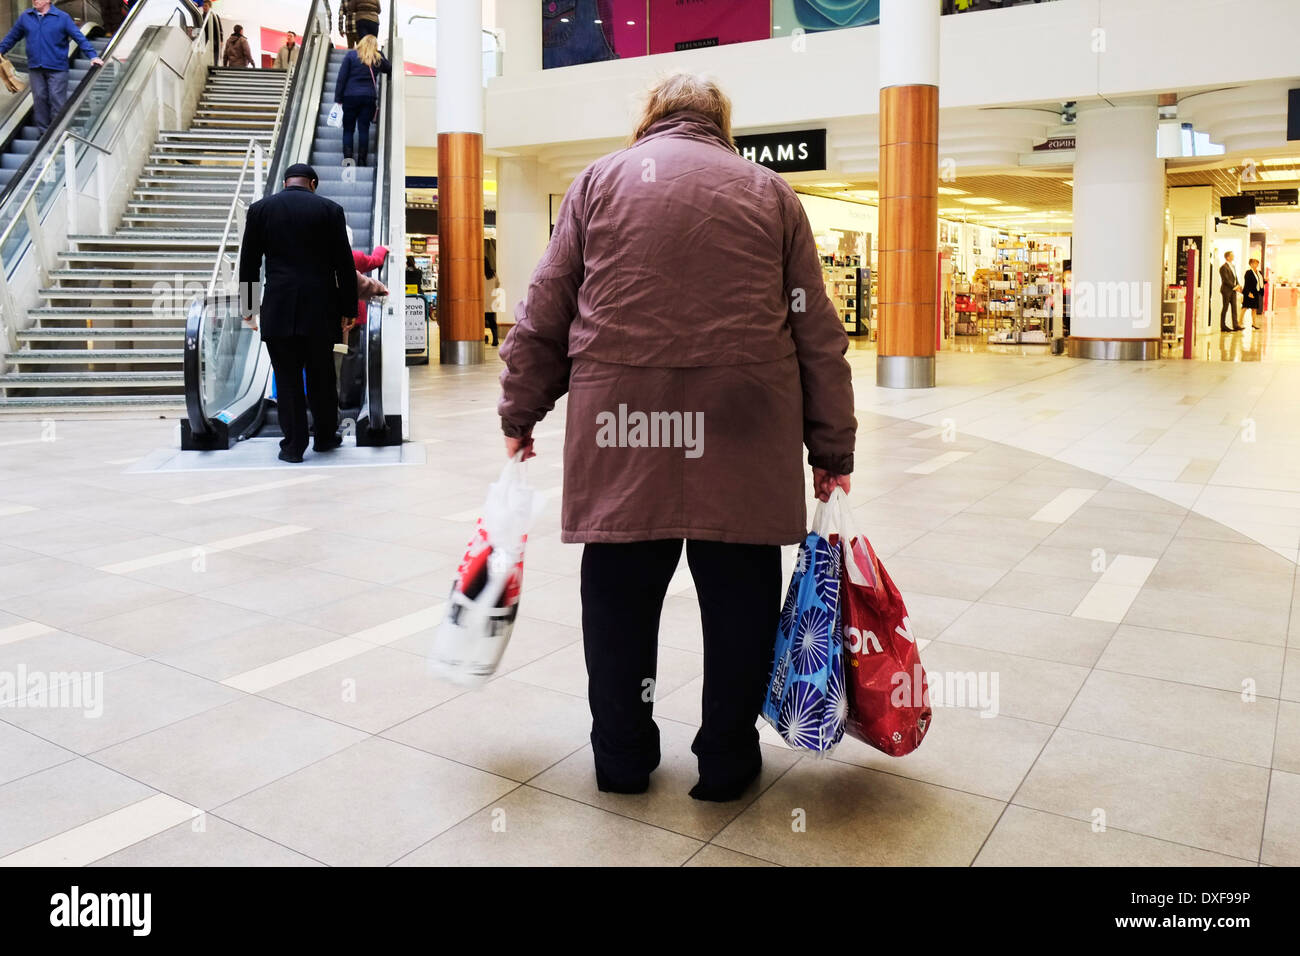 A tired elderly shopper in a shopping mall. - Stock Image